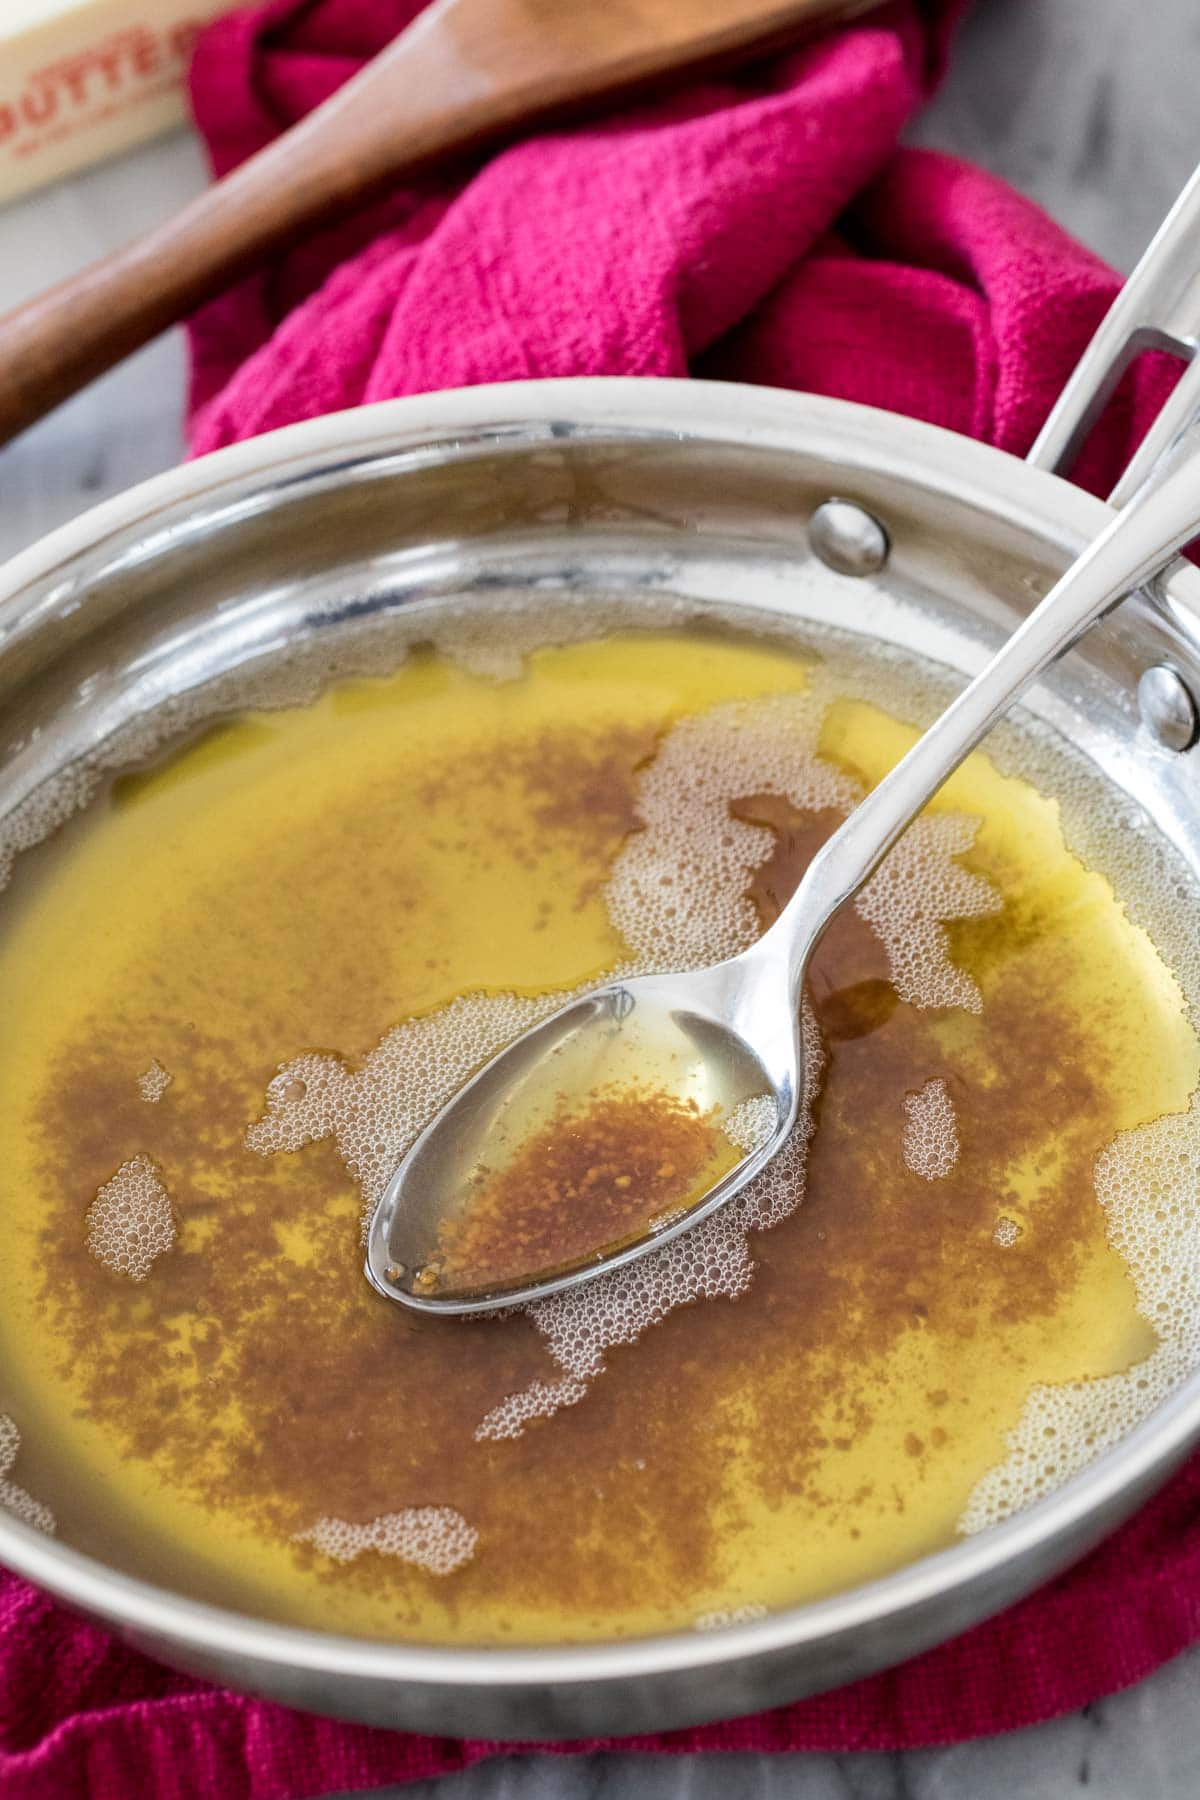 brown butter in saucepan with spoon showing browned bits